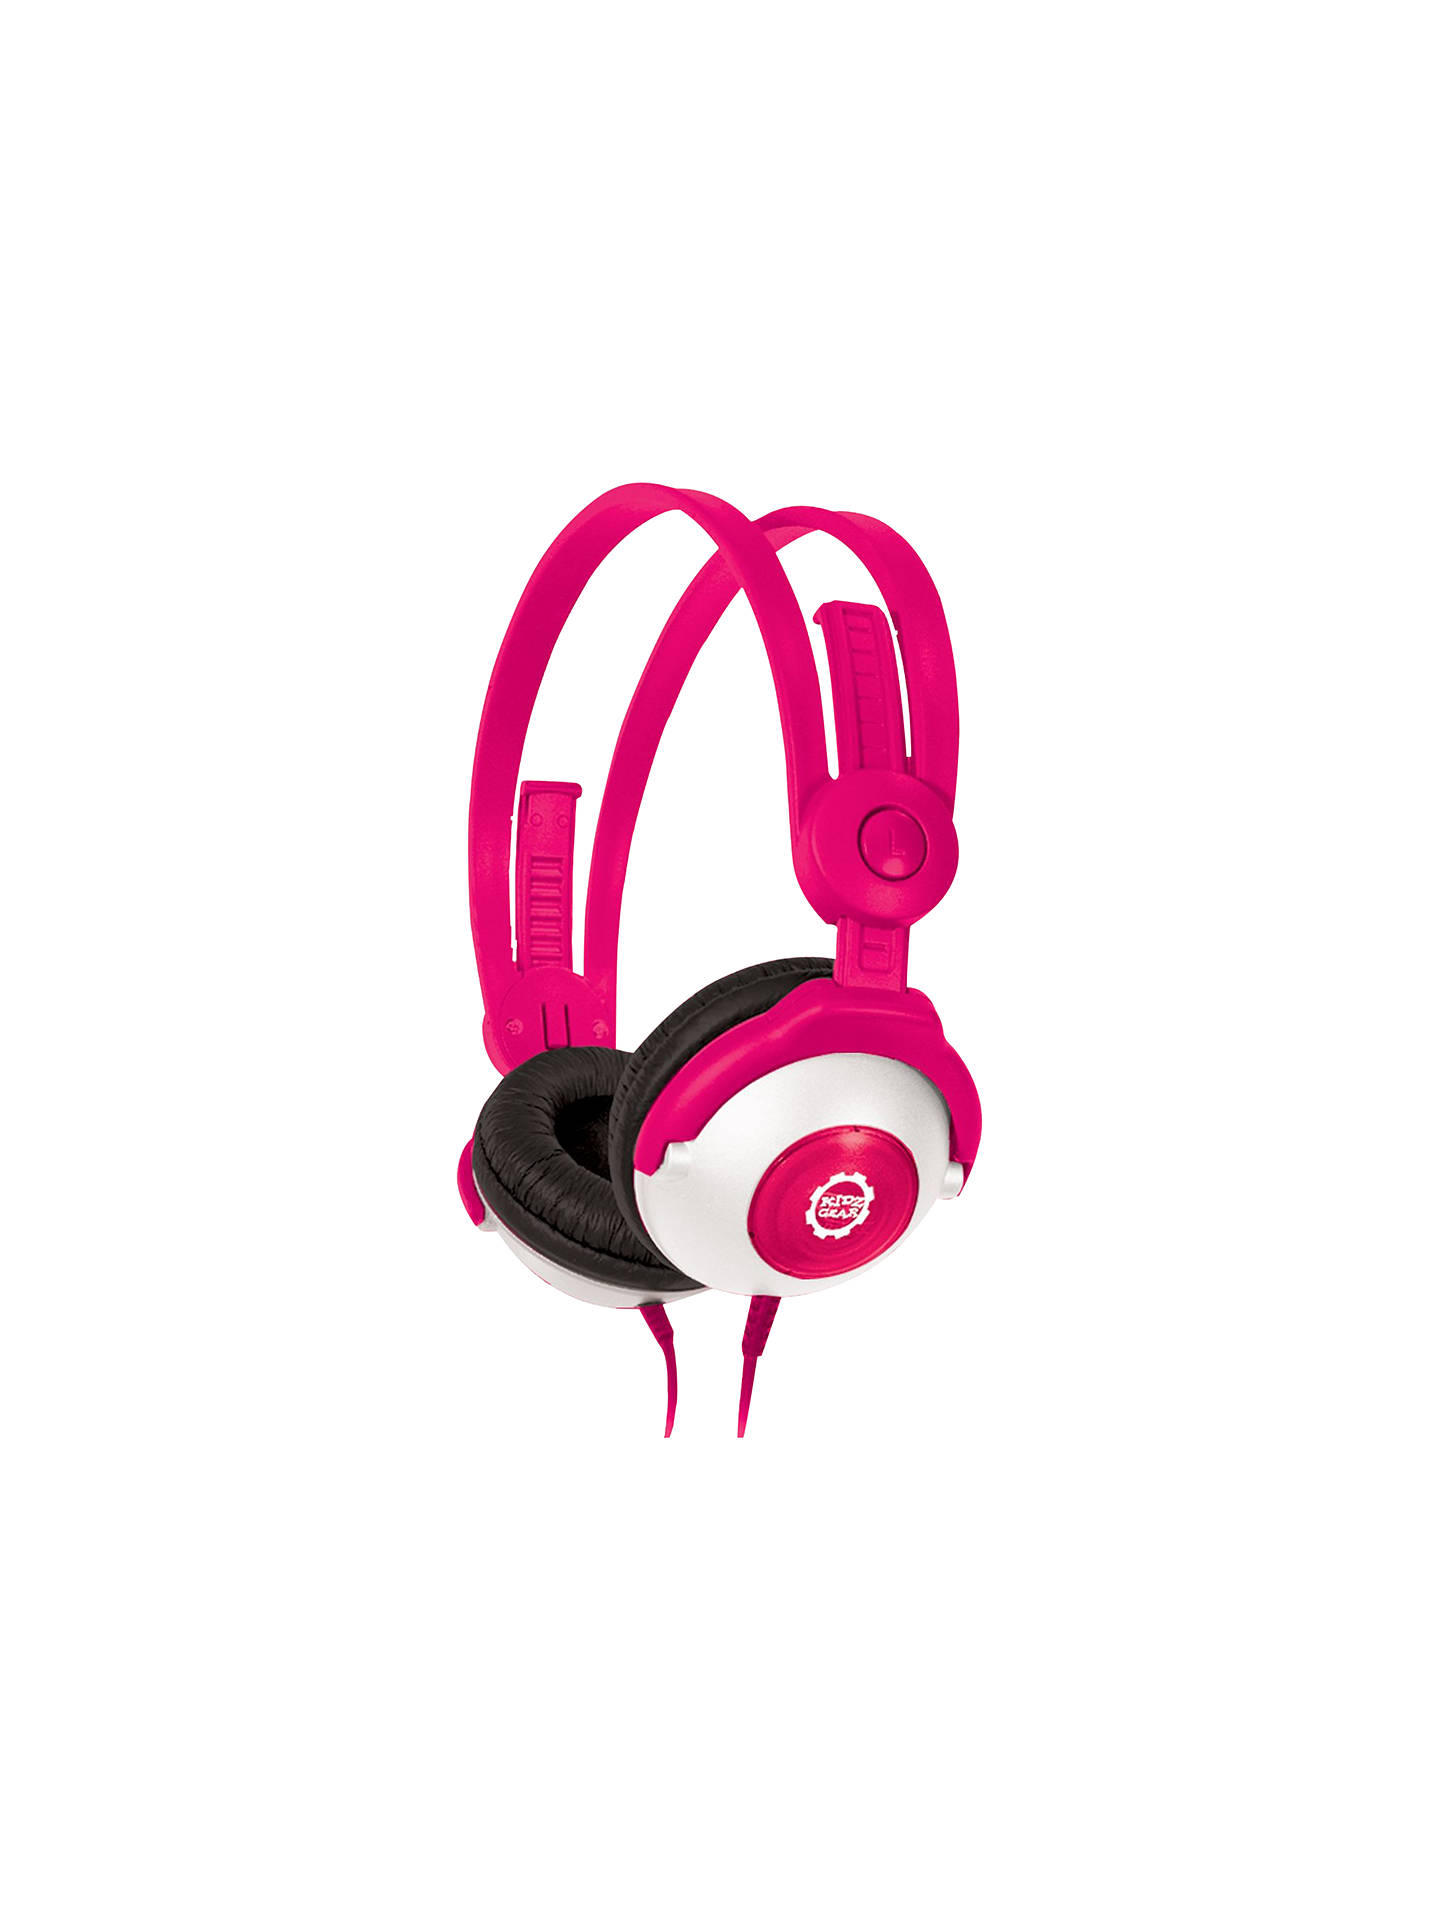 BuyKidz Gear Volume Limiting On-Ear Headphones For Children, Pink Online at johnlewis.com